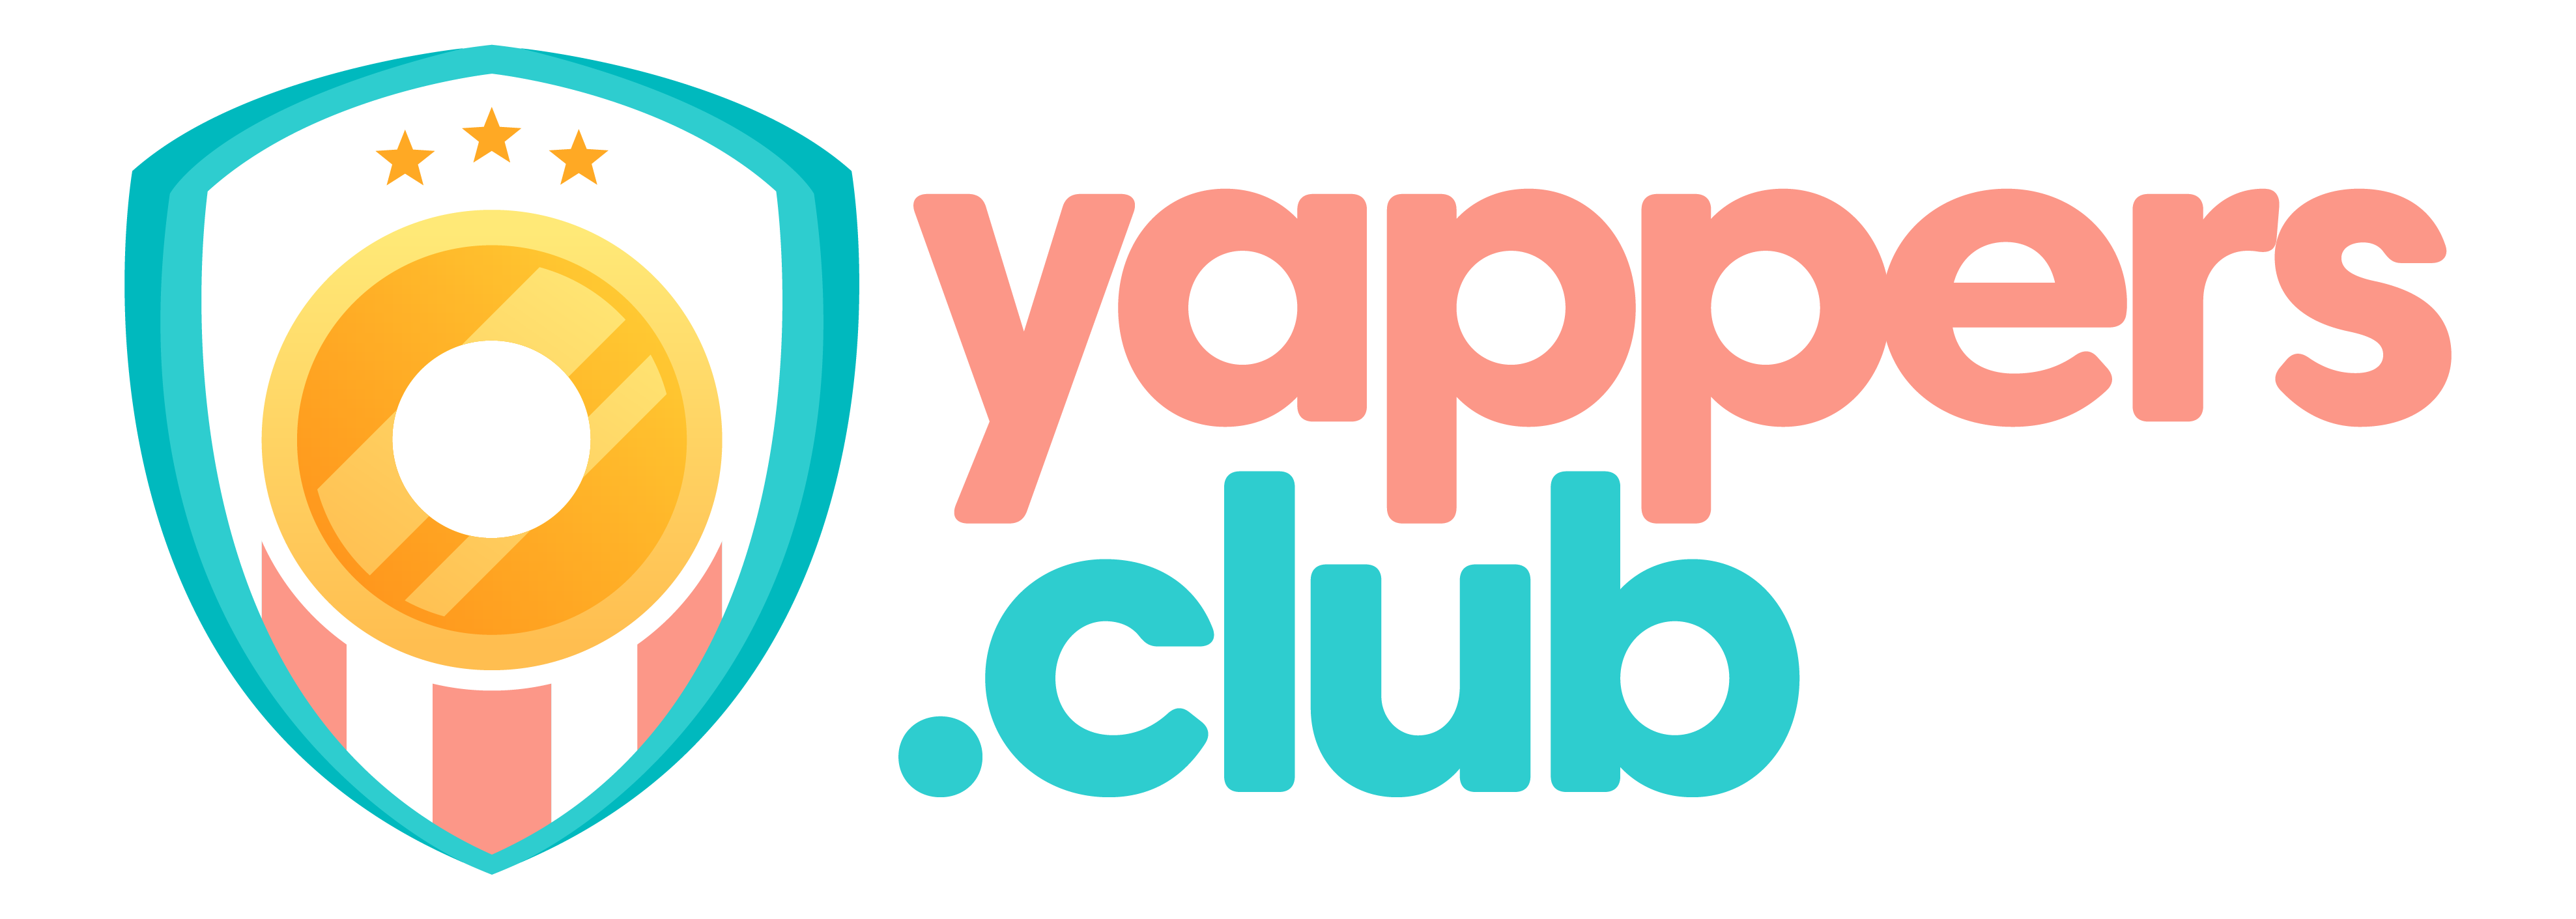 Yappers.club